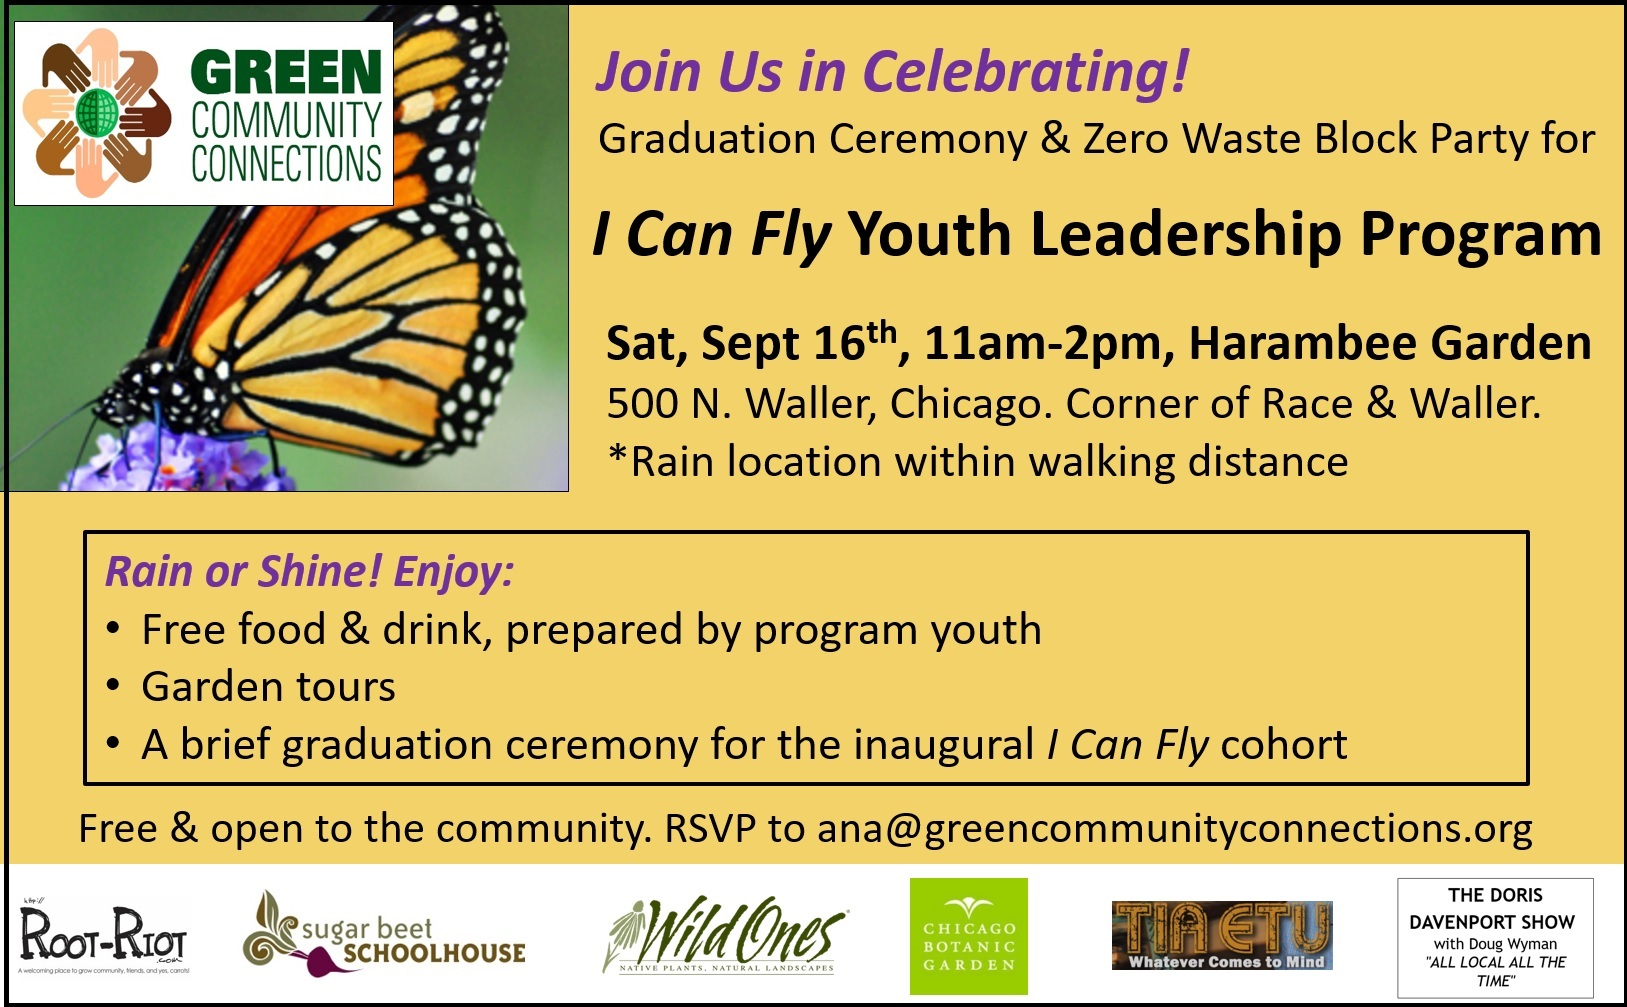 Join us for the I Can Fly Youth Leadership Program graduation ceremony and zero waste block party on Saturday, September 16th from 11am to 2pm at Harambee Garden in Chicago's Austin community, 500 N. Waller Chicago. Free and open to the community. Free food and drink.